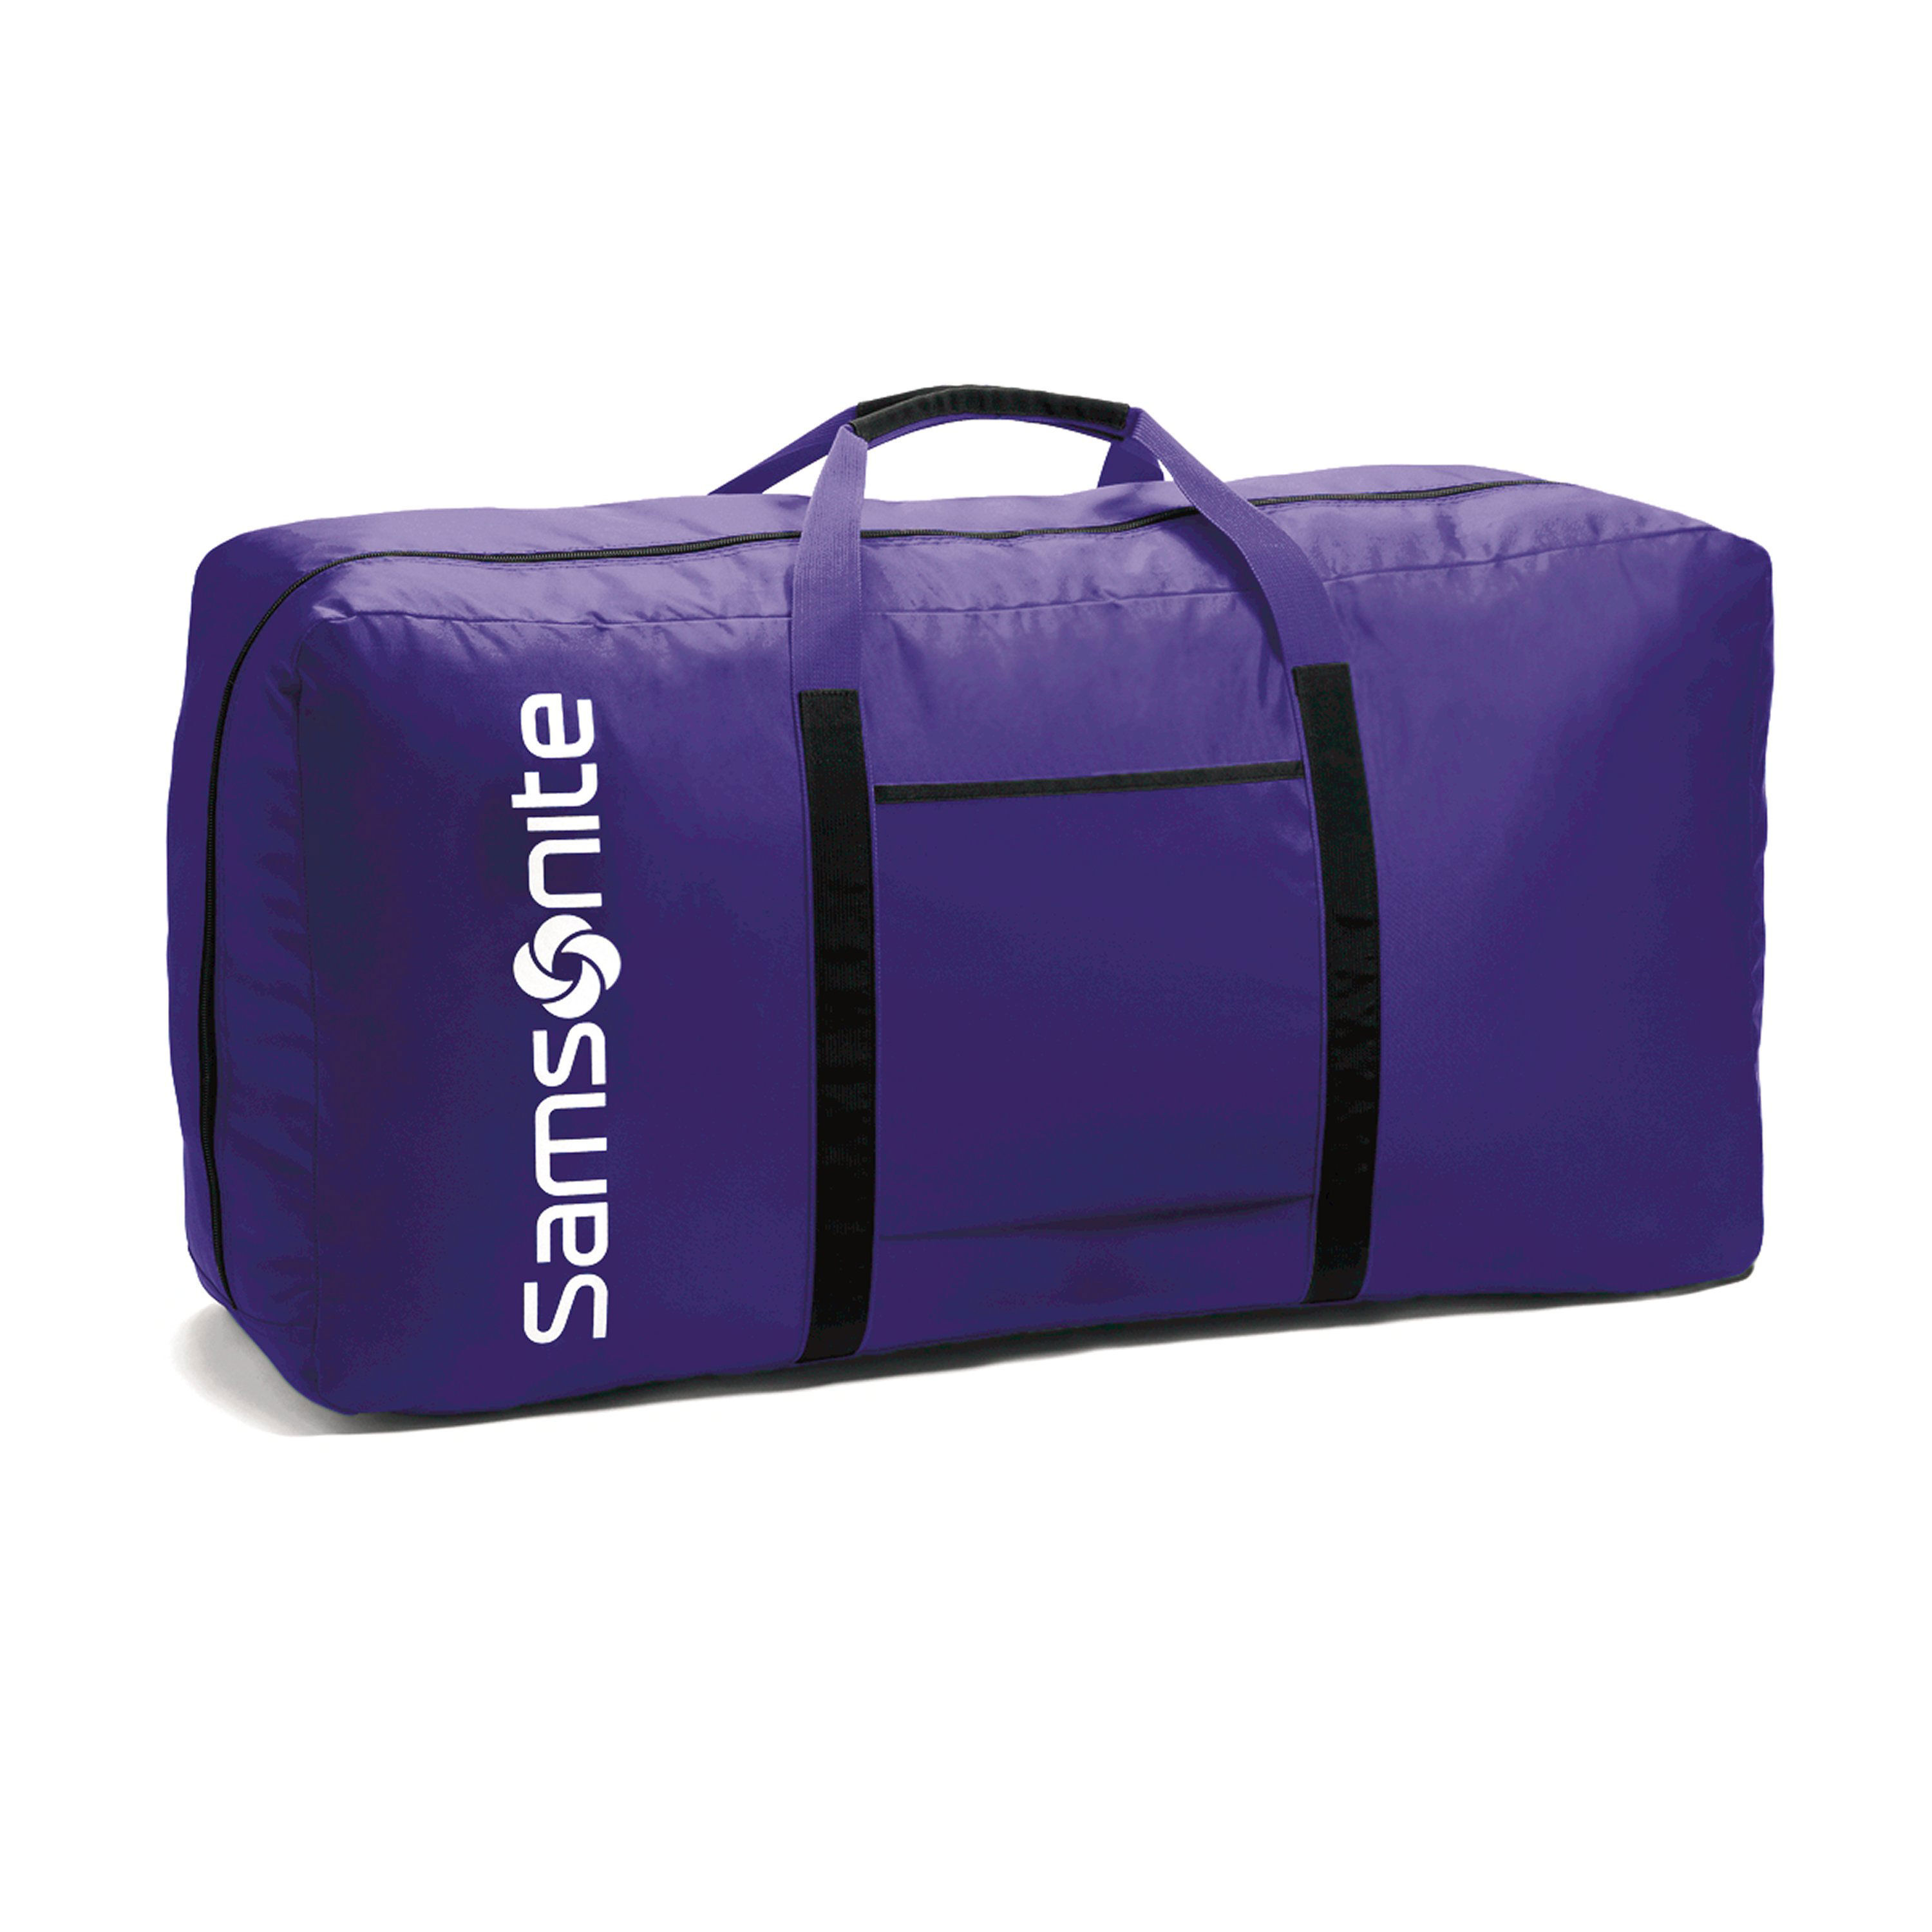 release date: first rate 50% price Tote-A-Ton Duffle Bag